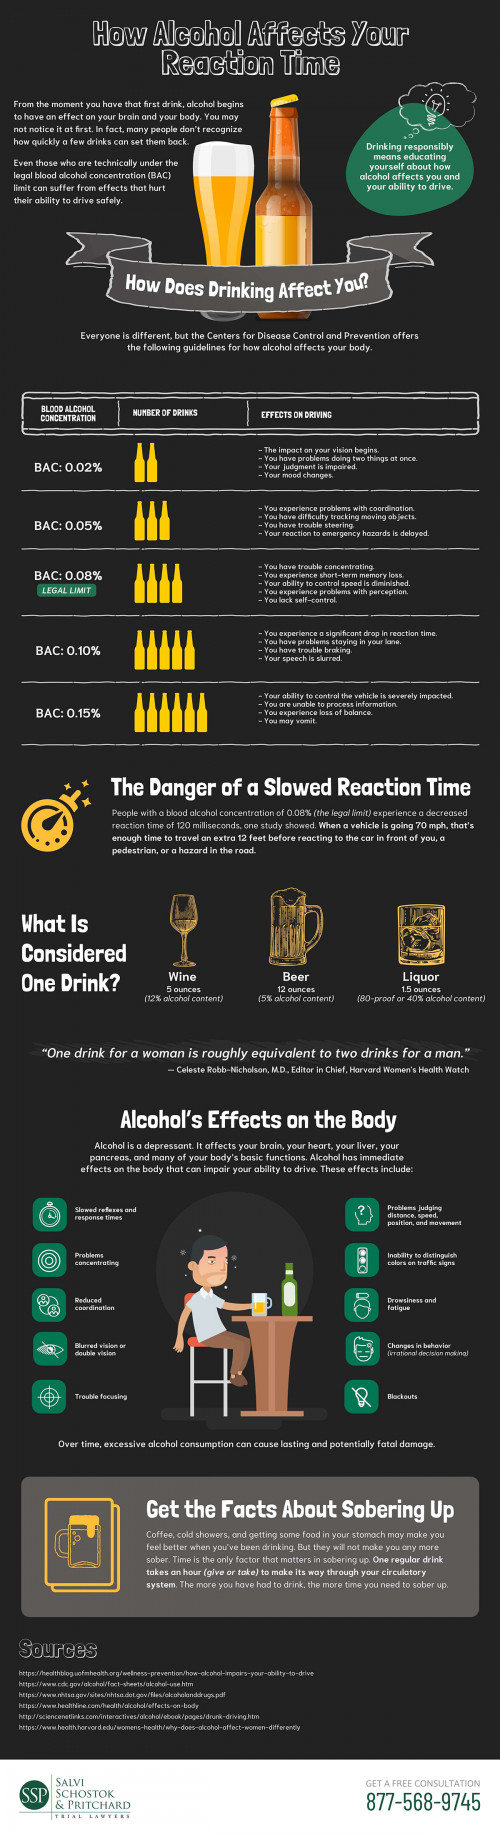 How-alcohol-affects-reaction-time-Salvi-Law.jpg